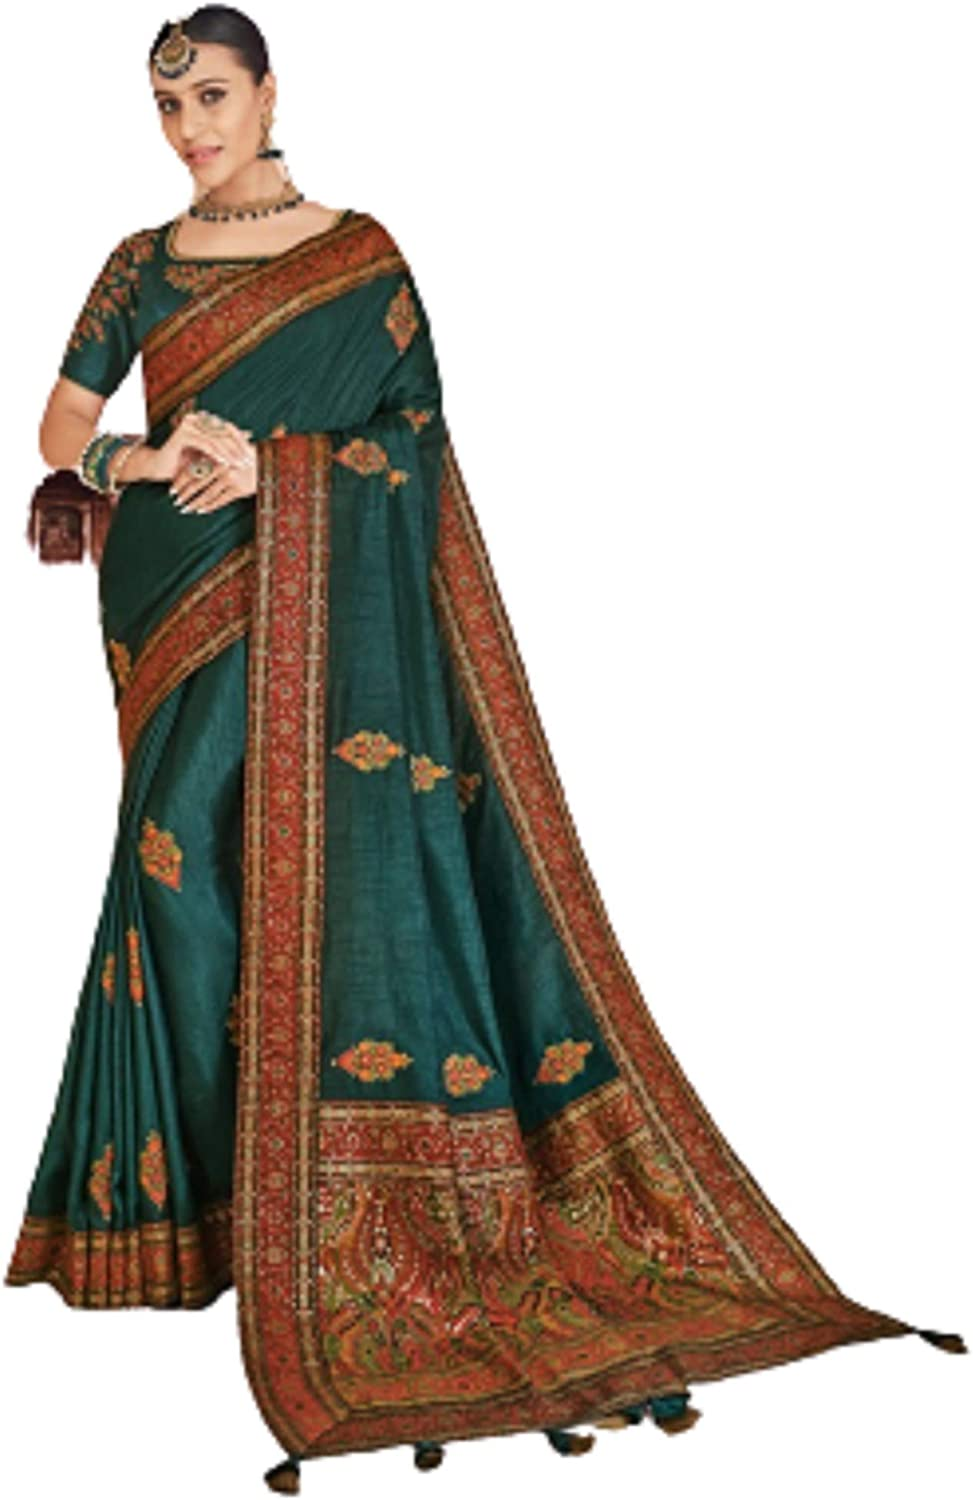 Festive Wear classy Dola Silk Saree with unstiched Blouse Rich look with BANARASI Border /& Hand Work